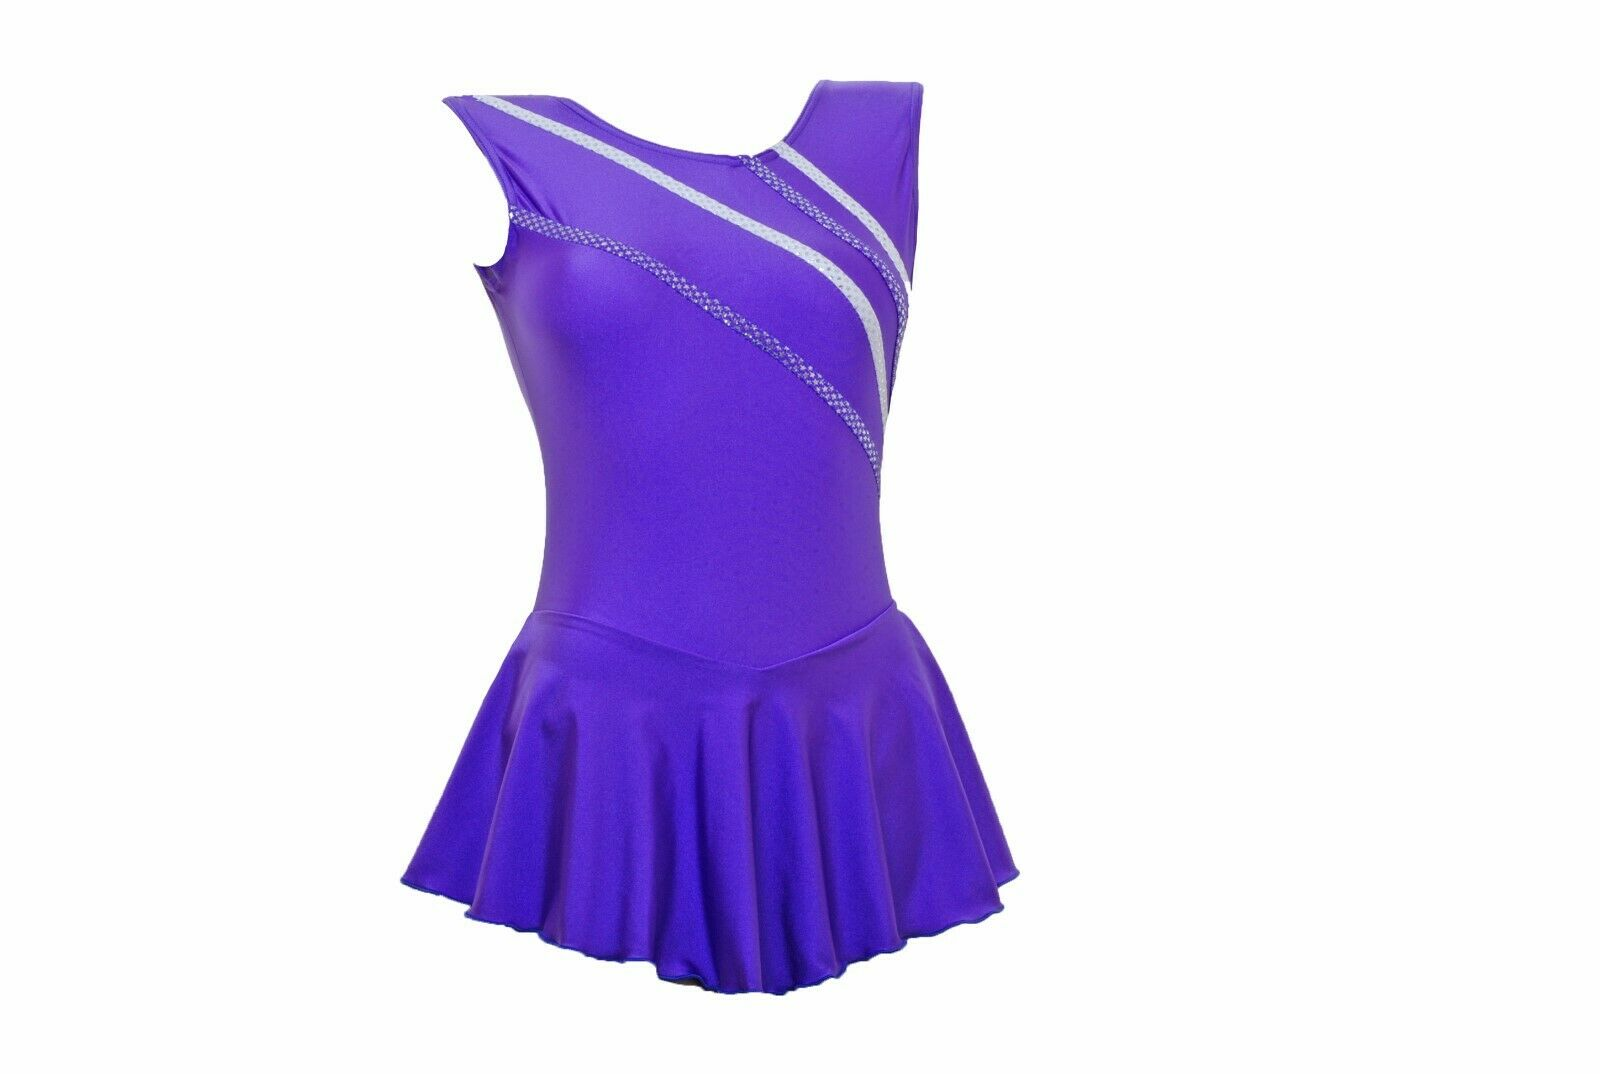 Skating Dress - Purple LYCRA   Metalic stripes NO SLEEVE ALL SIZES AVAILABLE